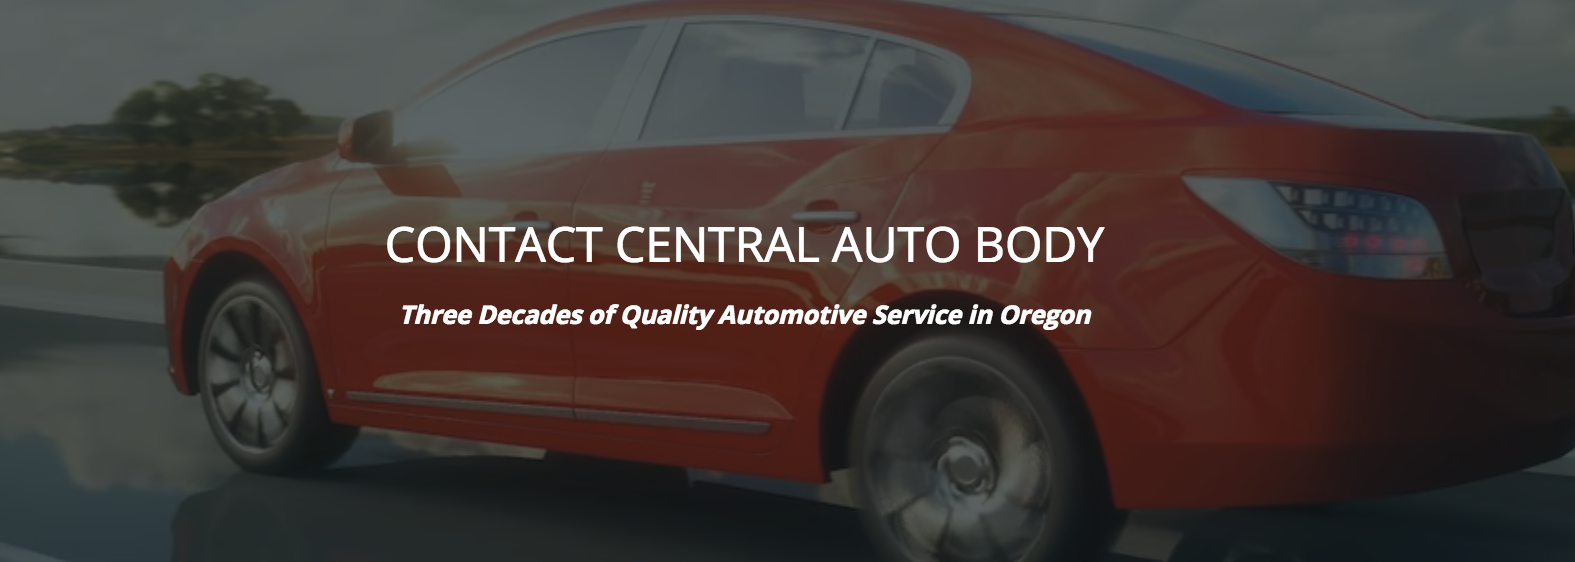 Central Auto Body & Repair- Gresham | formerly Chris's Car Care reviews | Body Shops at 1455 Powell Blvd - Gresham OR